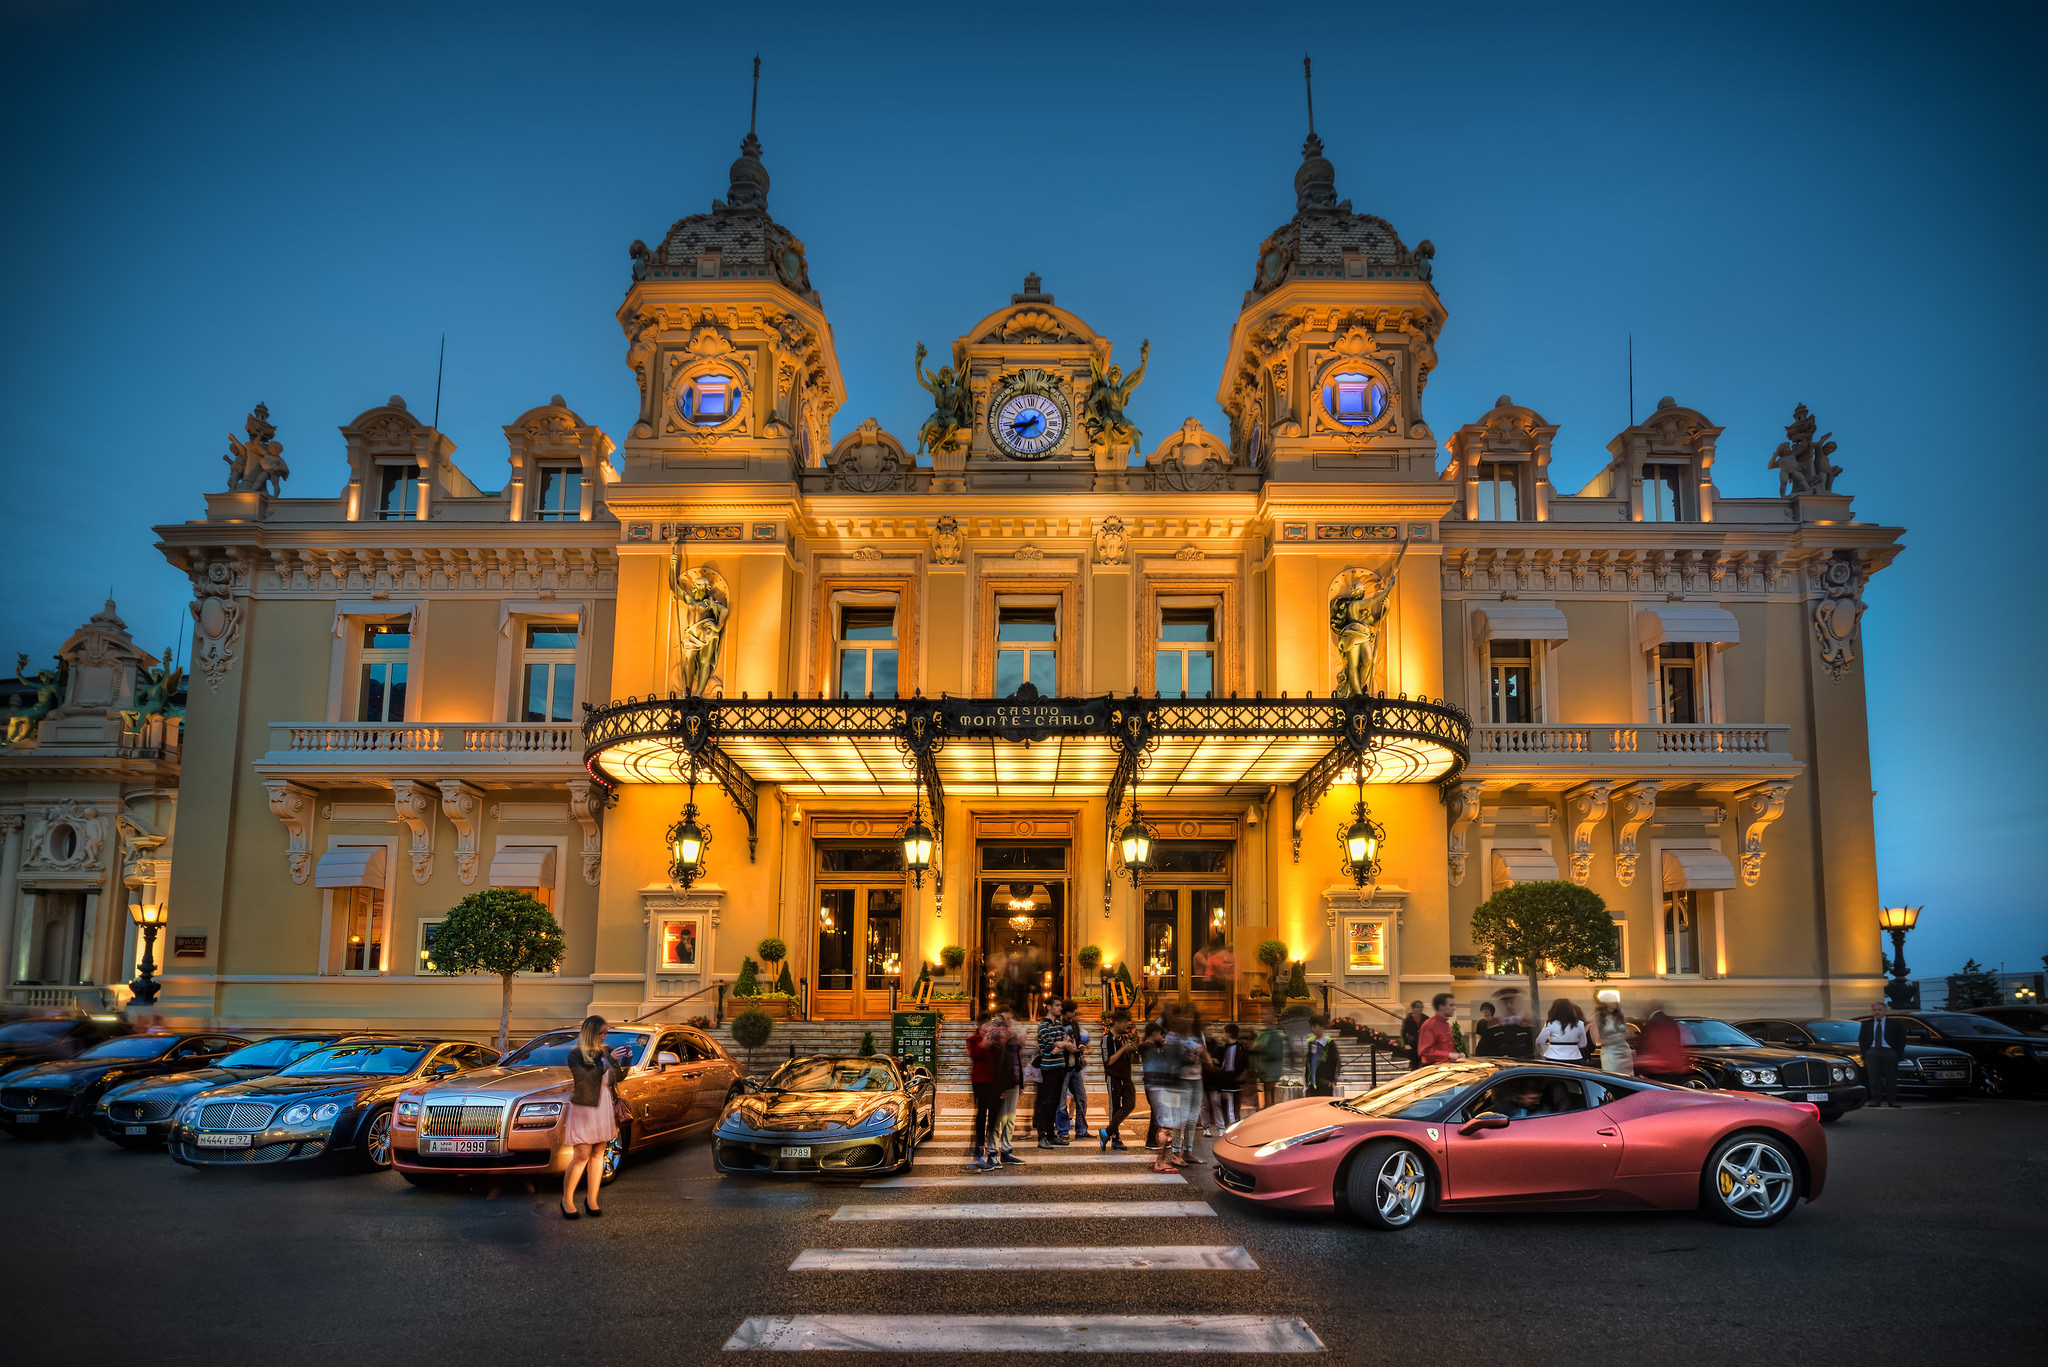 Big chances are you haven't been to these five glamorous and famous casino houses in the world